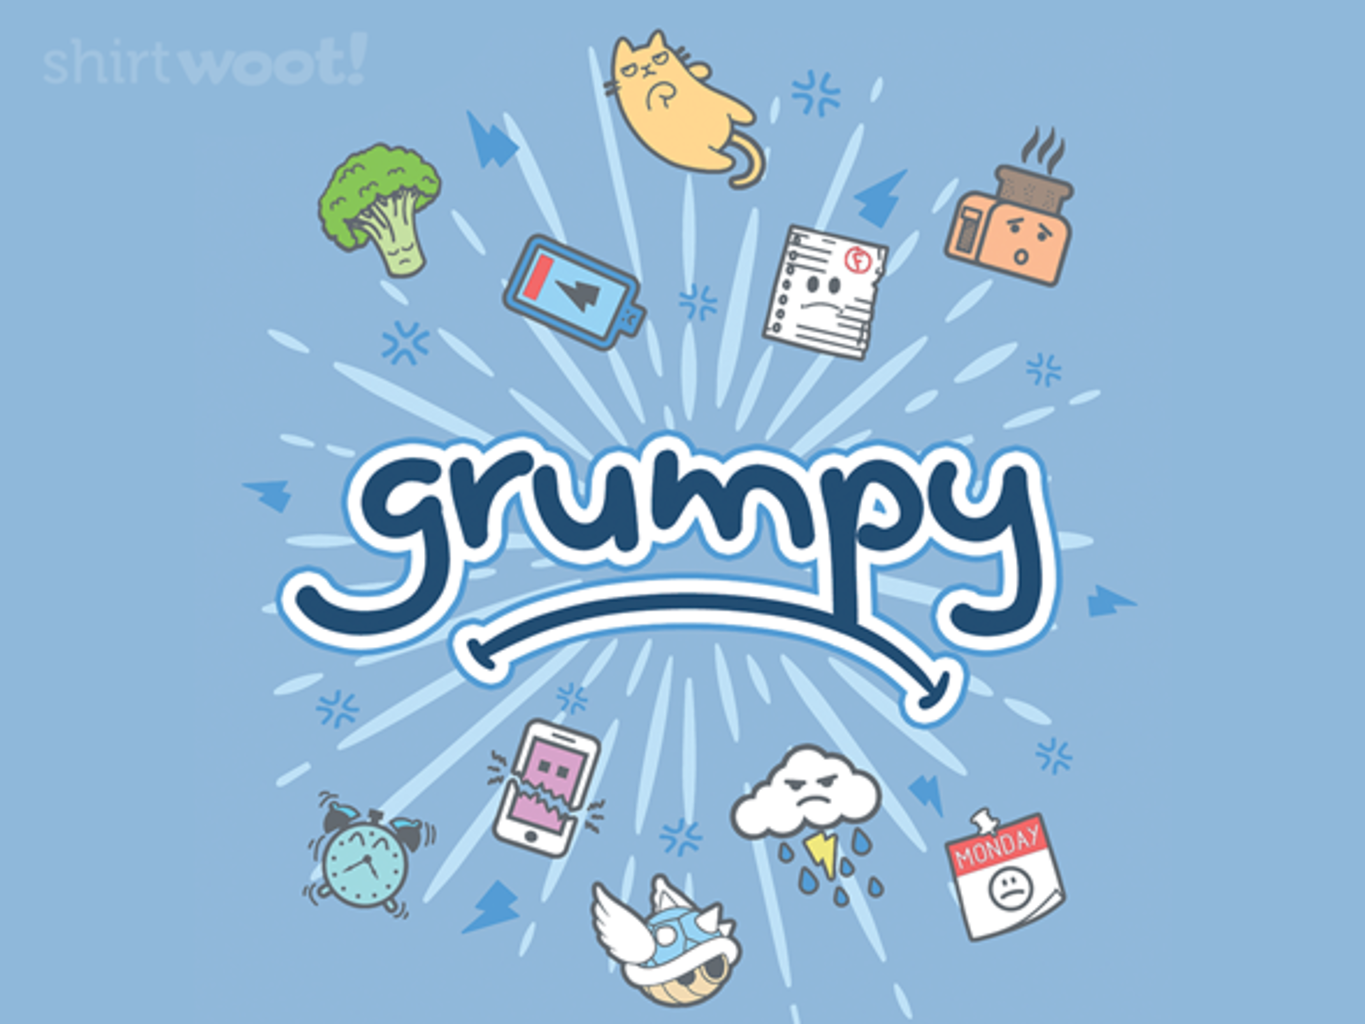 Woot!: This is My GRUMPY Shirt! - $15.00 + Free shipping